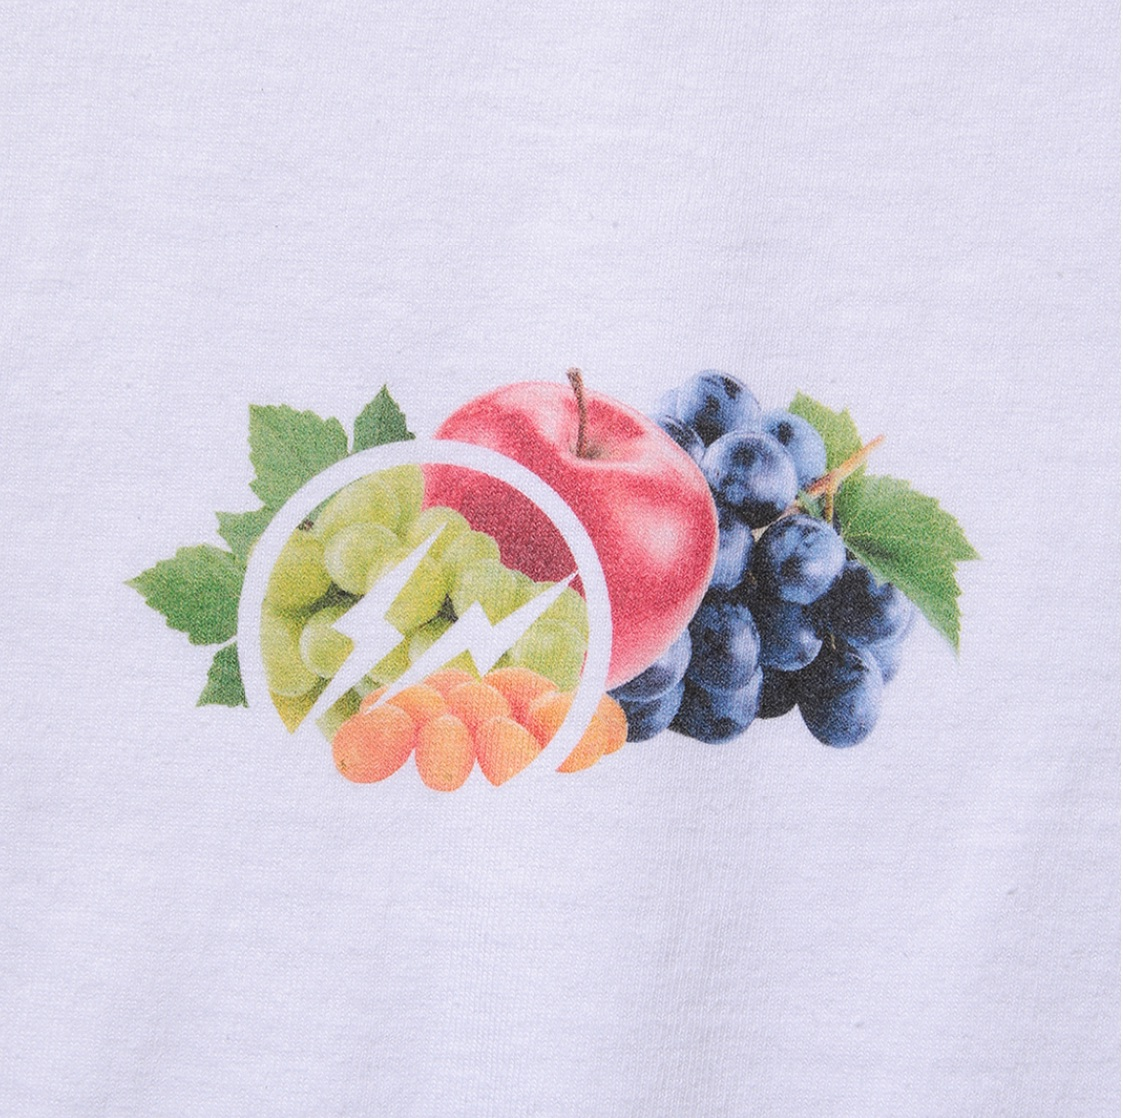 FRUIT OF THE LOOM×fragment designの3枚組パックTシャツが発売